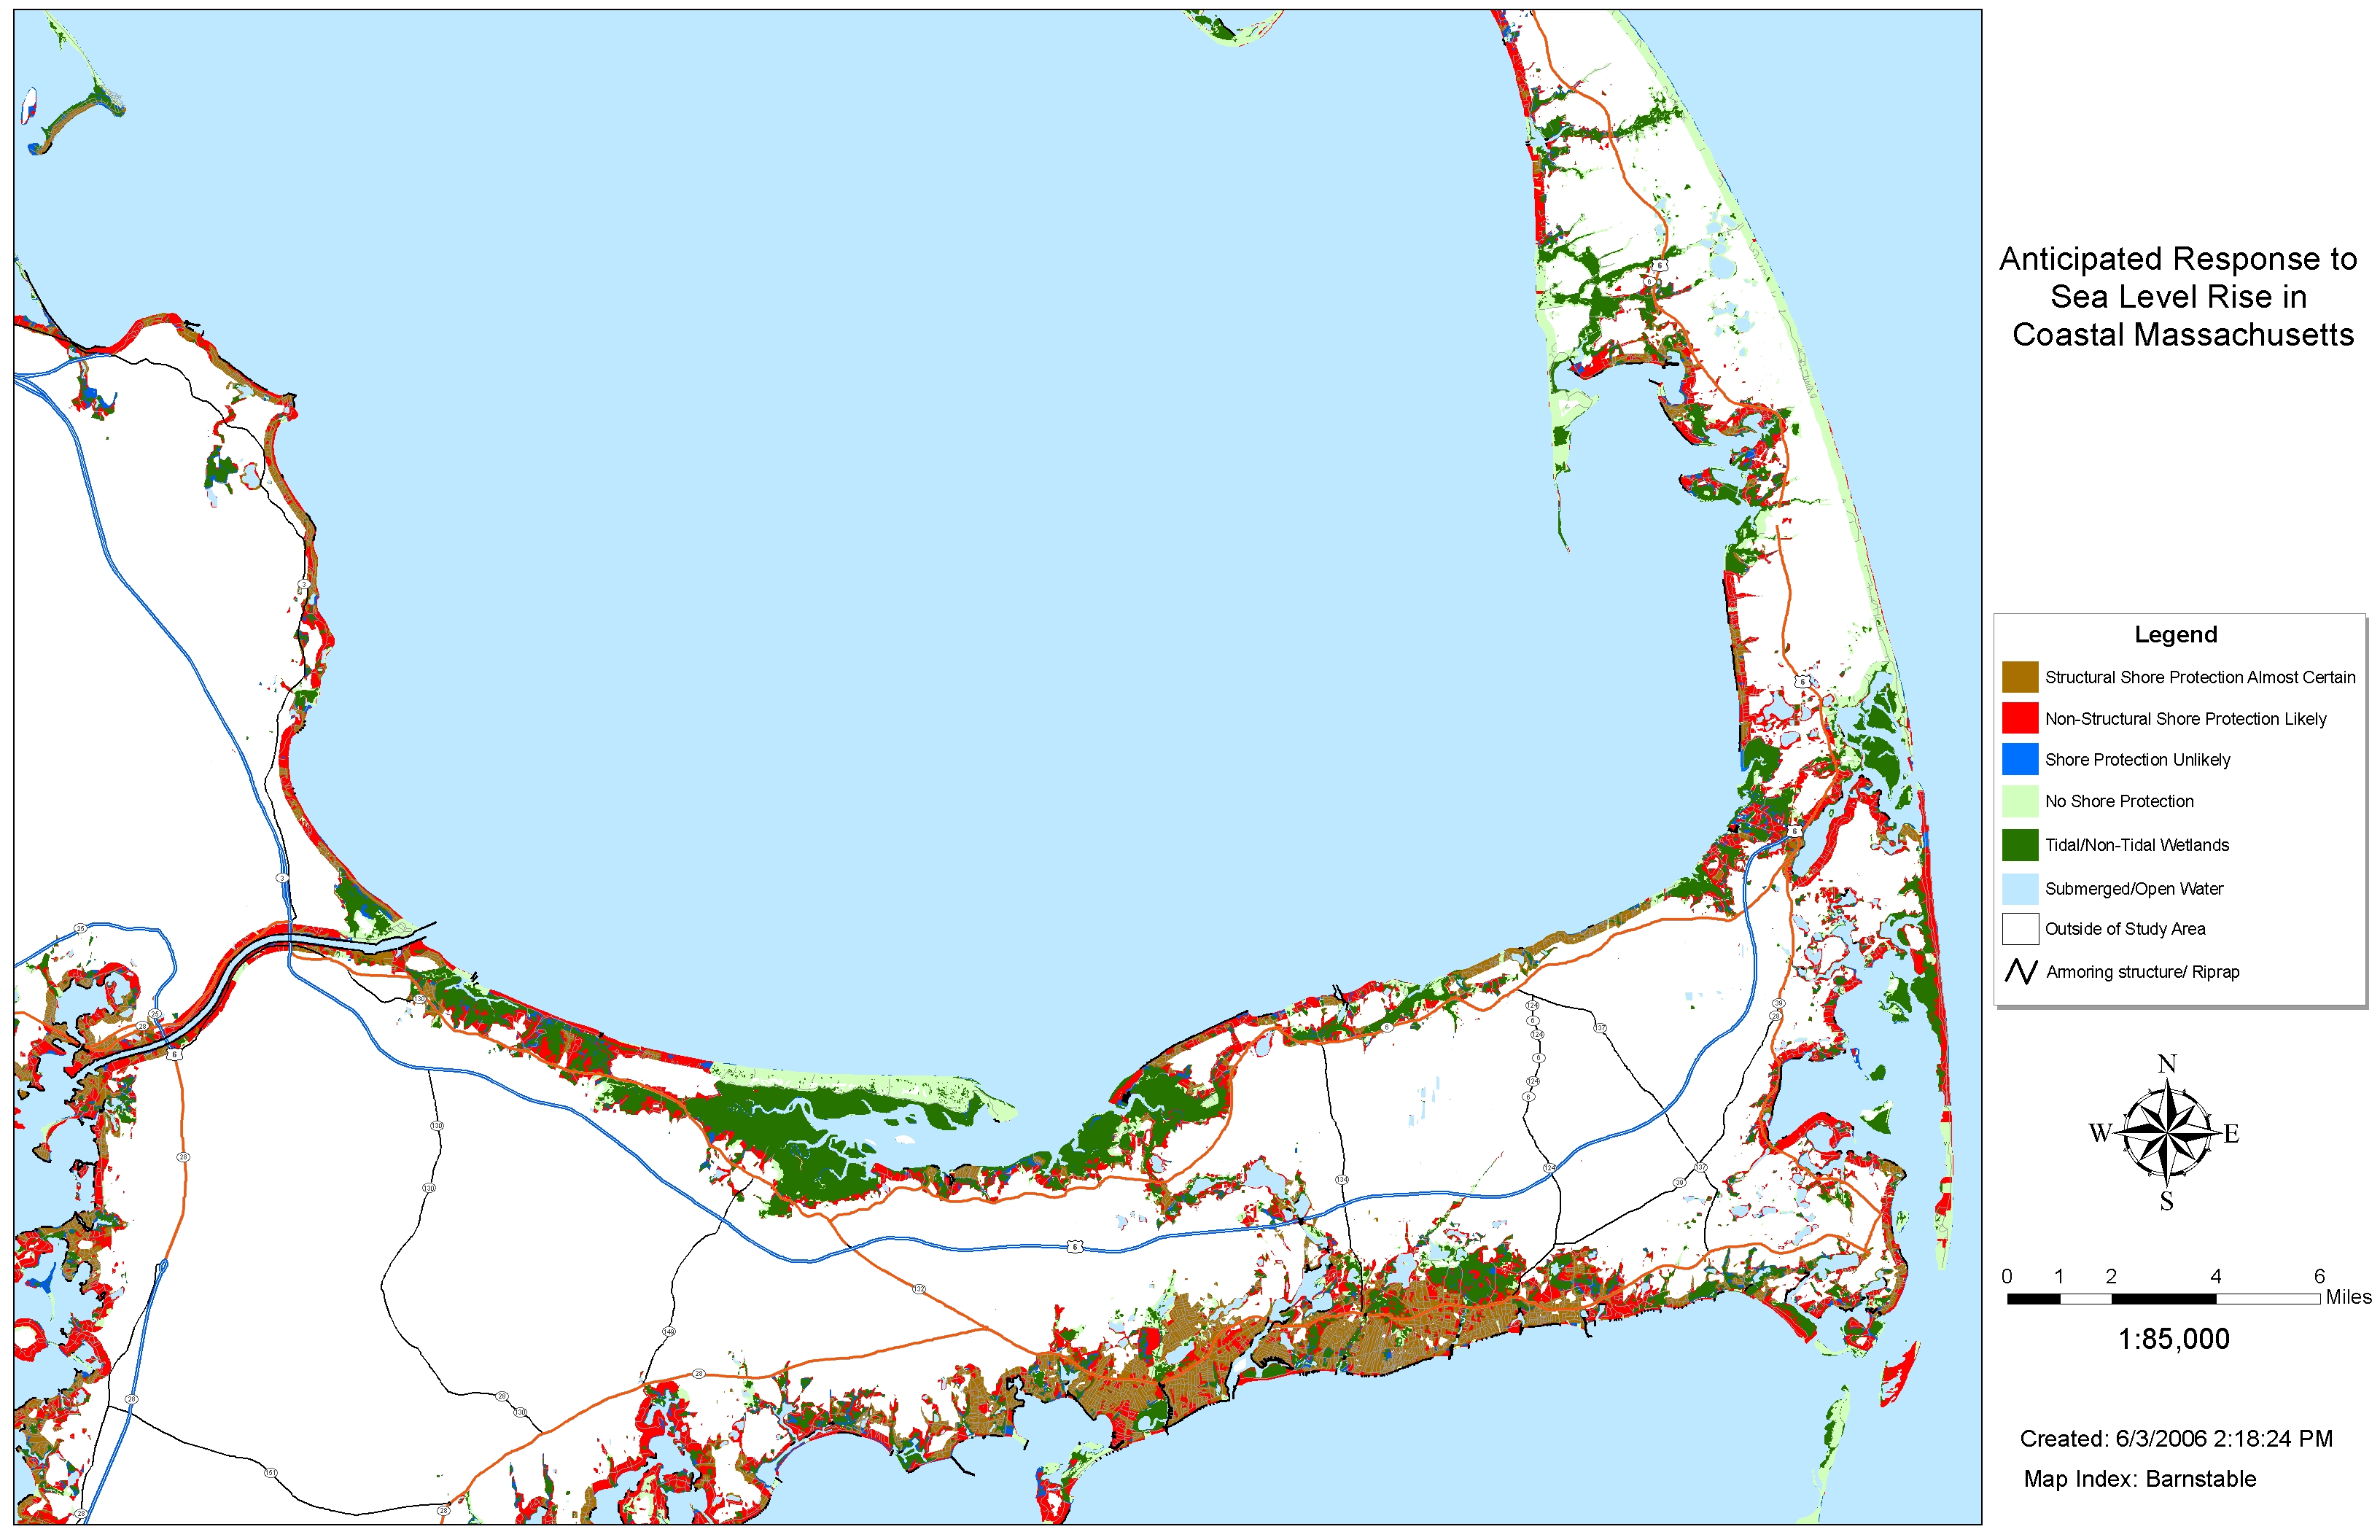 Sea Level Rise Planning Maps: Likelihood of Shore Protection in